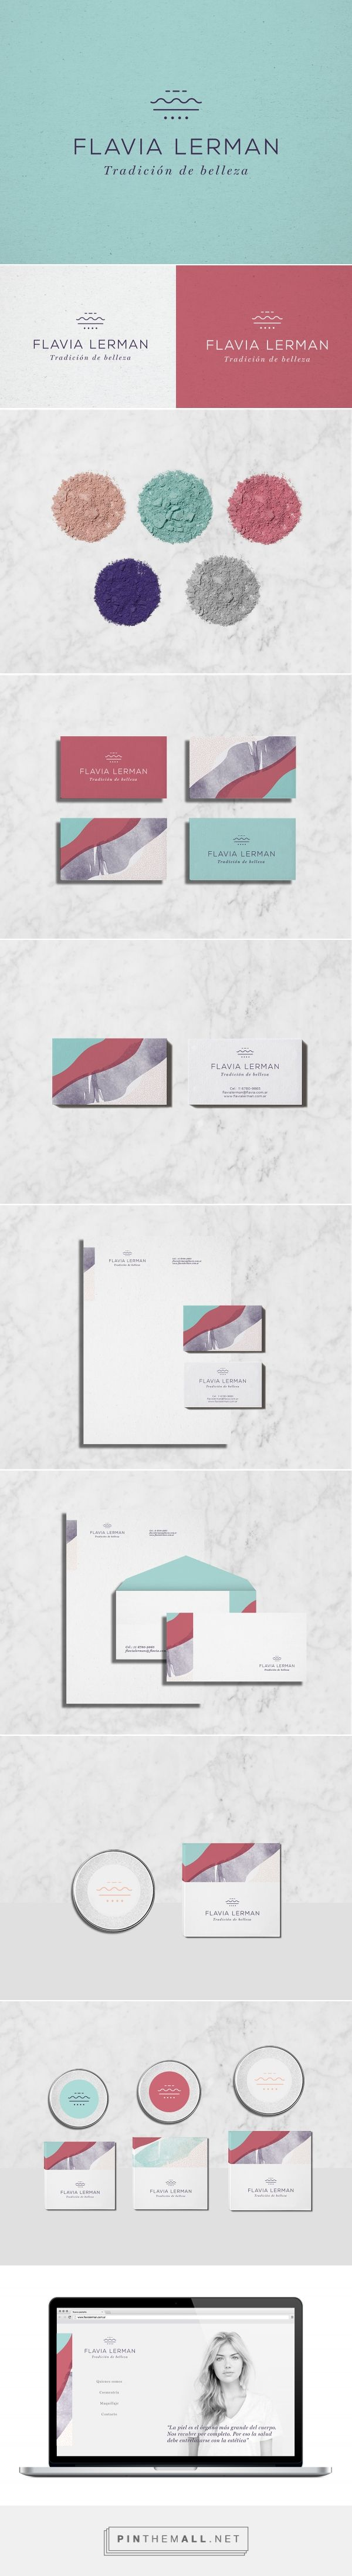 Flavia Lerman Beauty Branding by Cobra Studio | Fivestar Branding Agency – Design and Branding Agency & Curated Inspiration Gallery